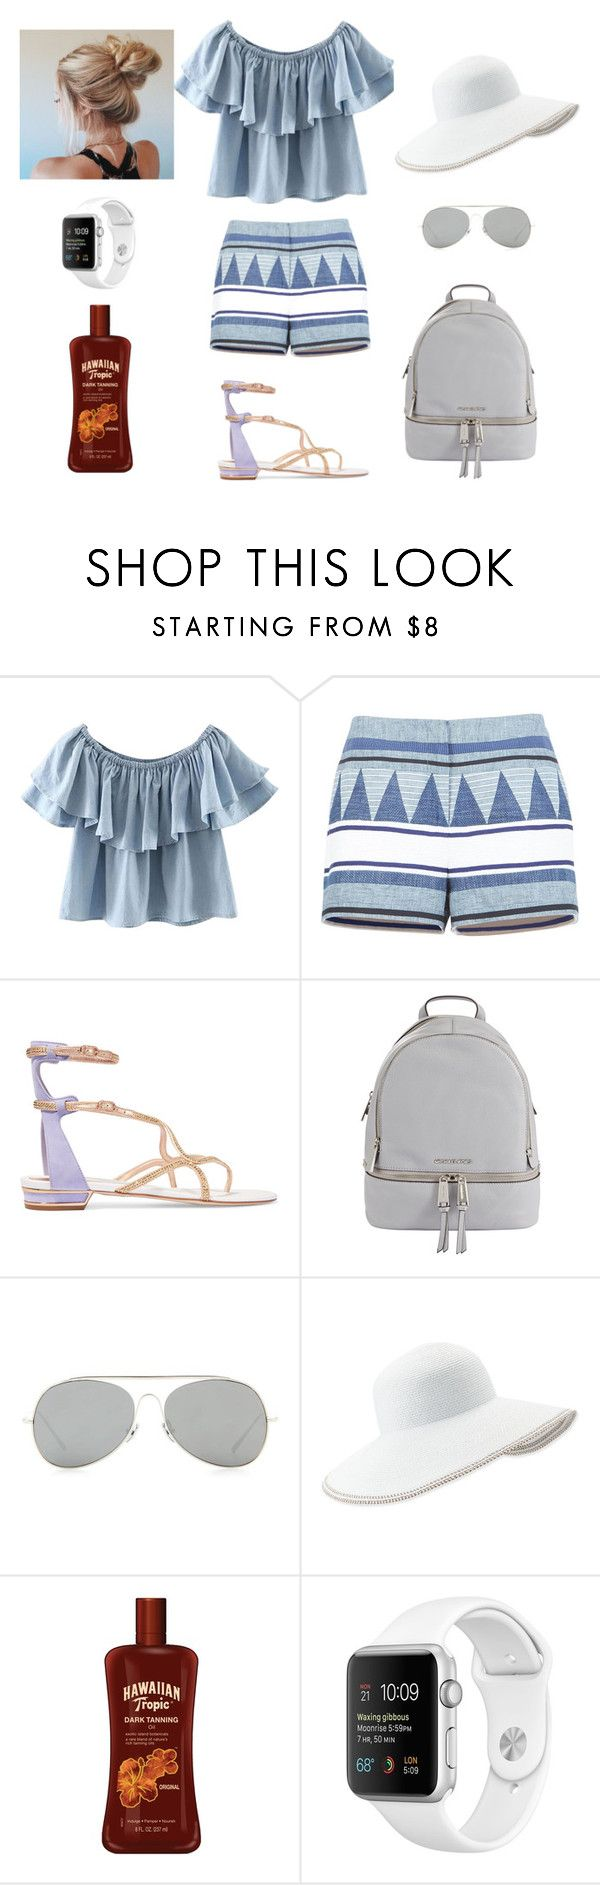 """""""Summer Barbecue Outfit"""" by kmachbitz on Polyvore featuring Chicnova Fashion, BCBGMAXAZRIA, René Caovilla, MICHAEL Michael Kors, Acne Studios and Eric Javits"""